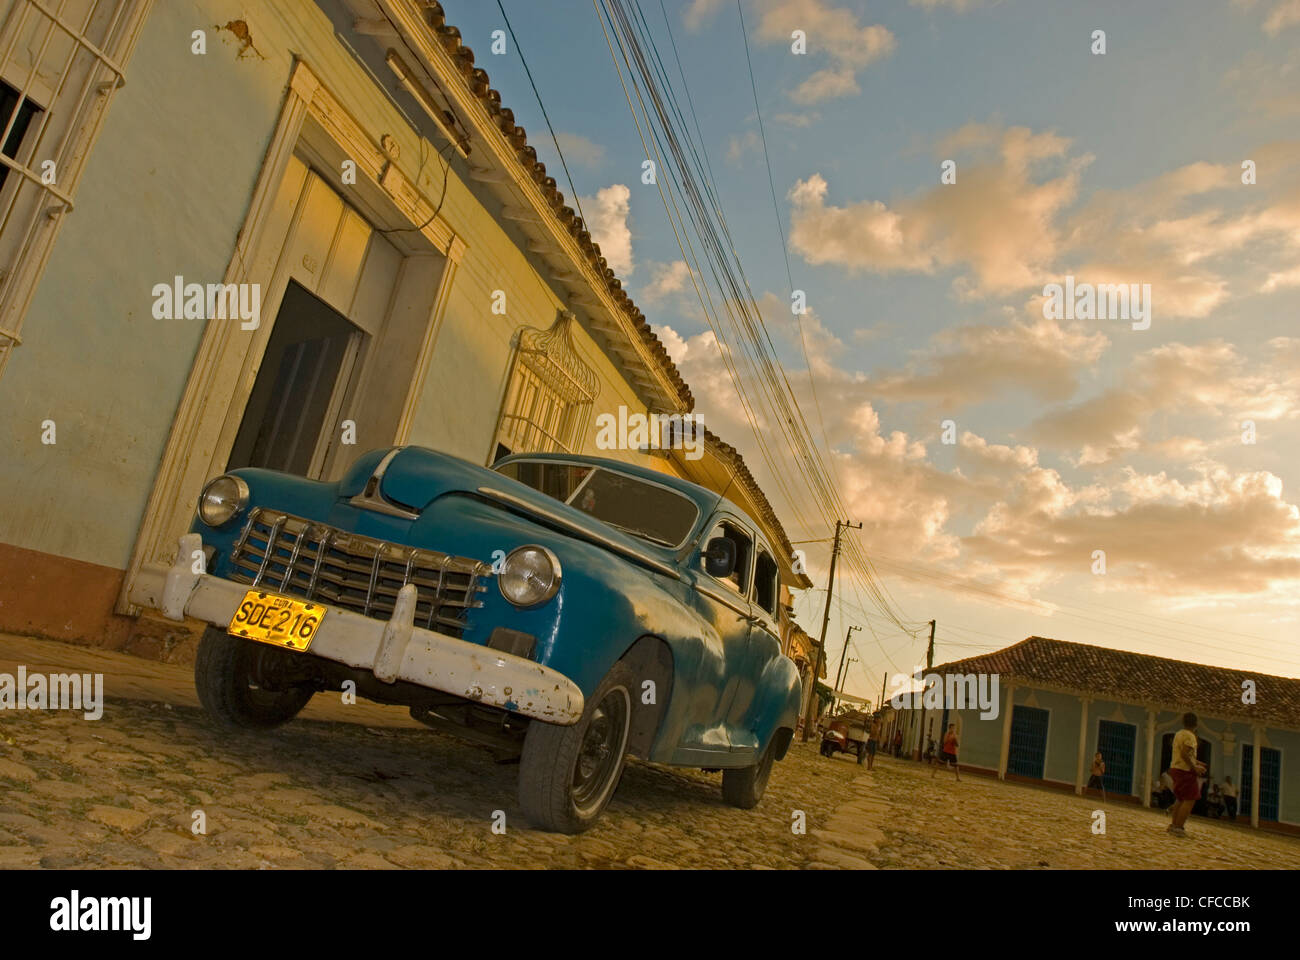 One of the old classic cars in Trinidad Cuba Stock Photo, Royalty ...